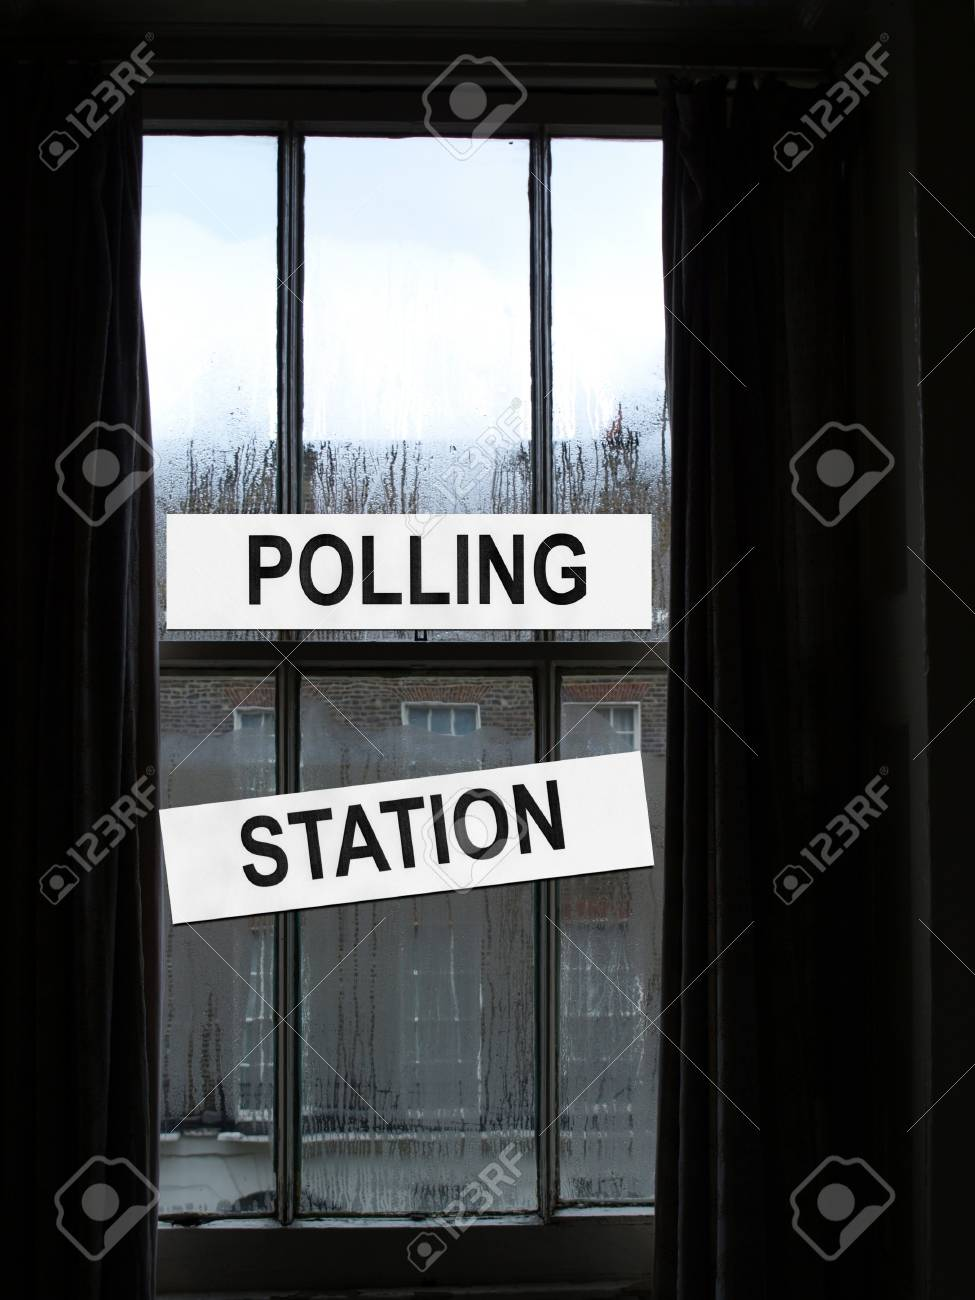 Polling station place for voters to cast ballots in elections Stock Photo - 7324077